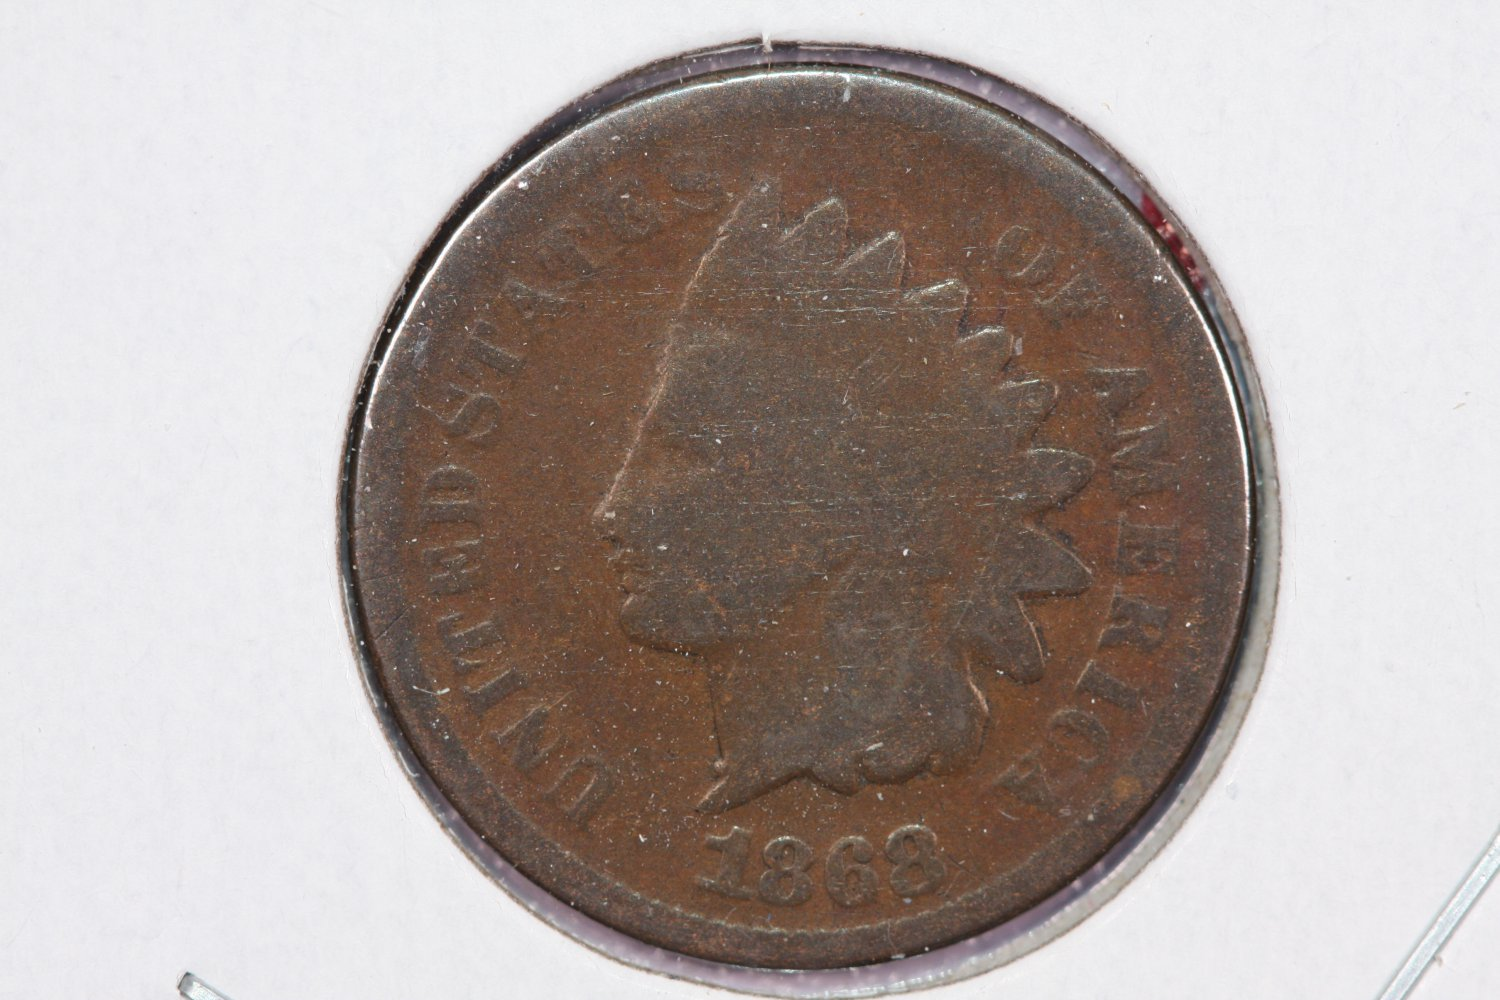 1868 1C Indian Head Cents, Fair Circulated Condiition. Affordable Coin #2511